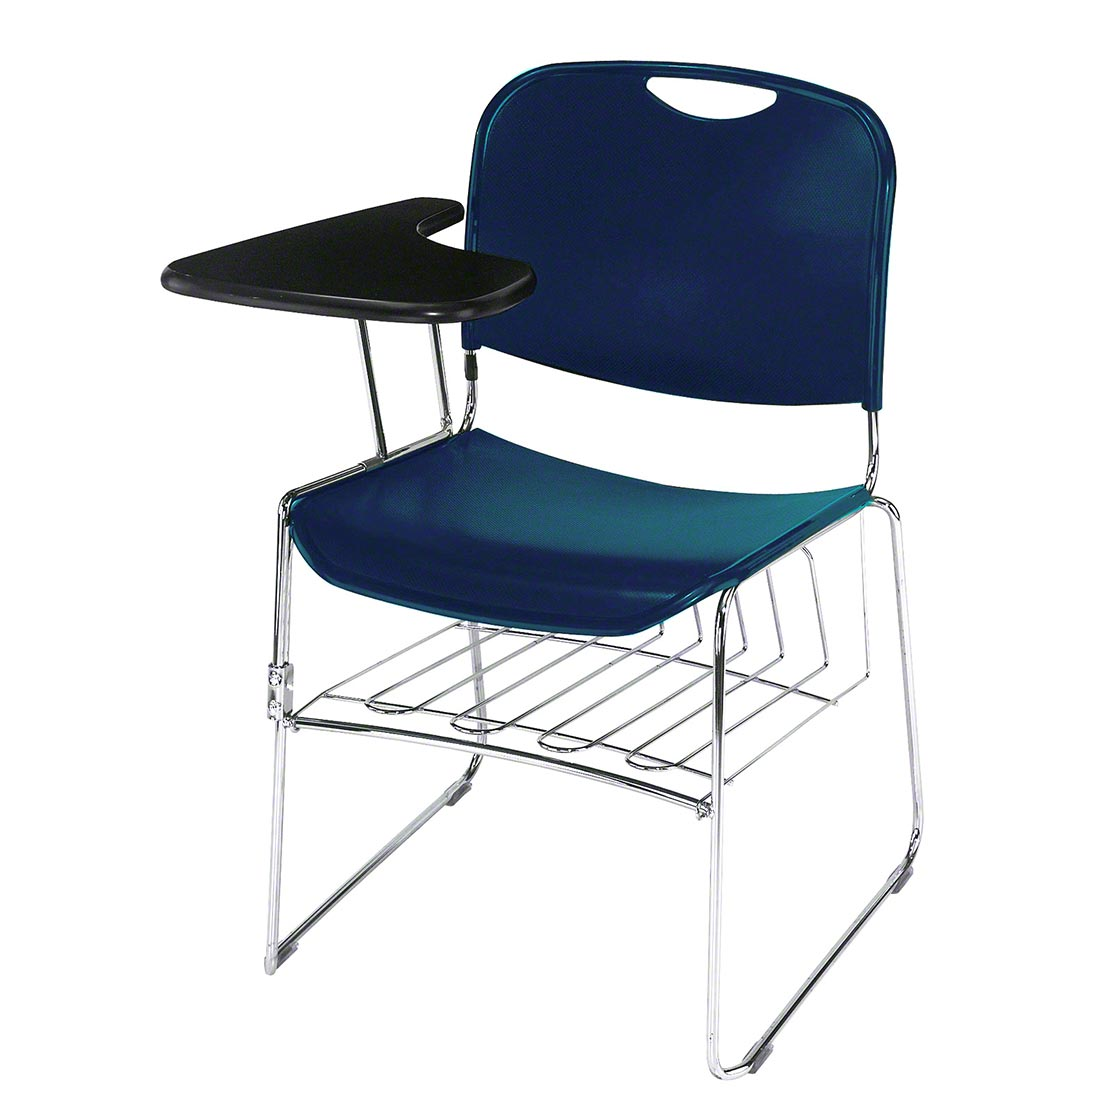 Merveilleux ... National Public Seating 8500 Series Ultra Compact Stack Chairs (4 Pack)  ...